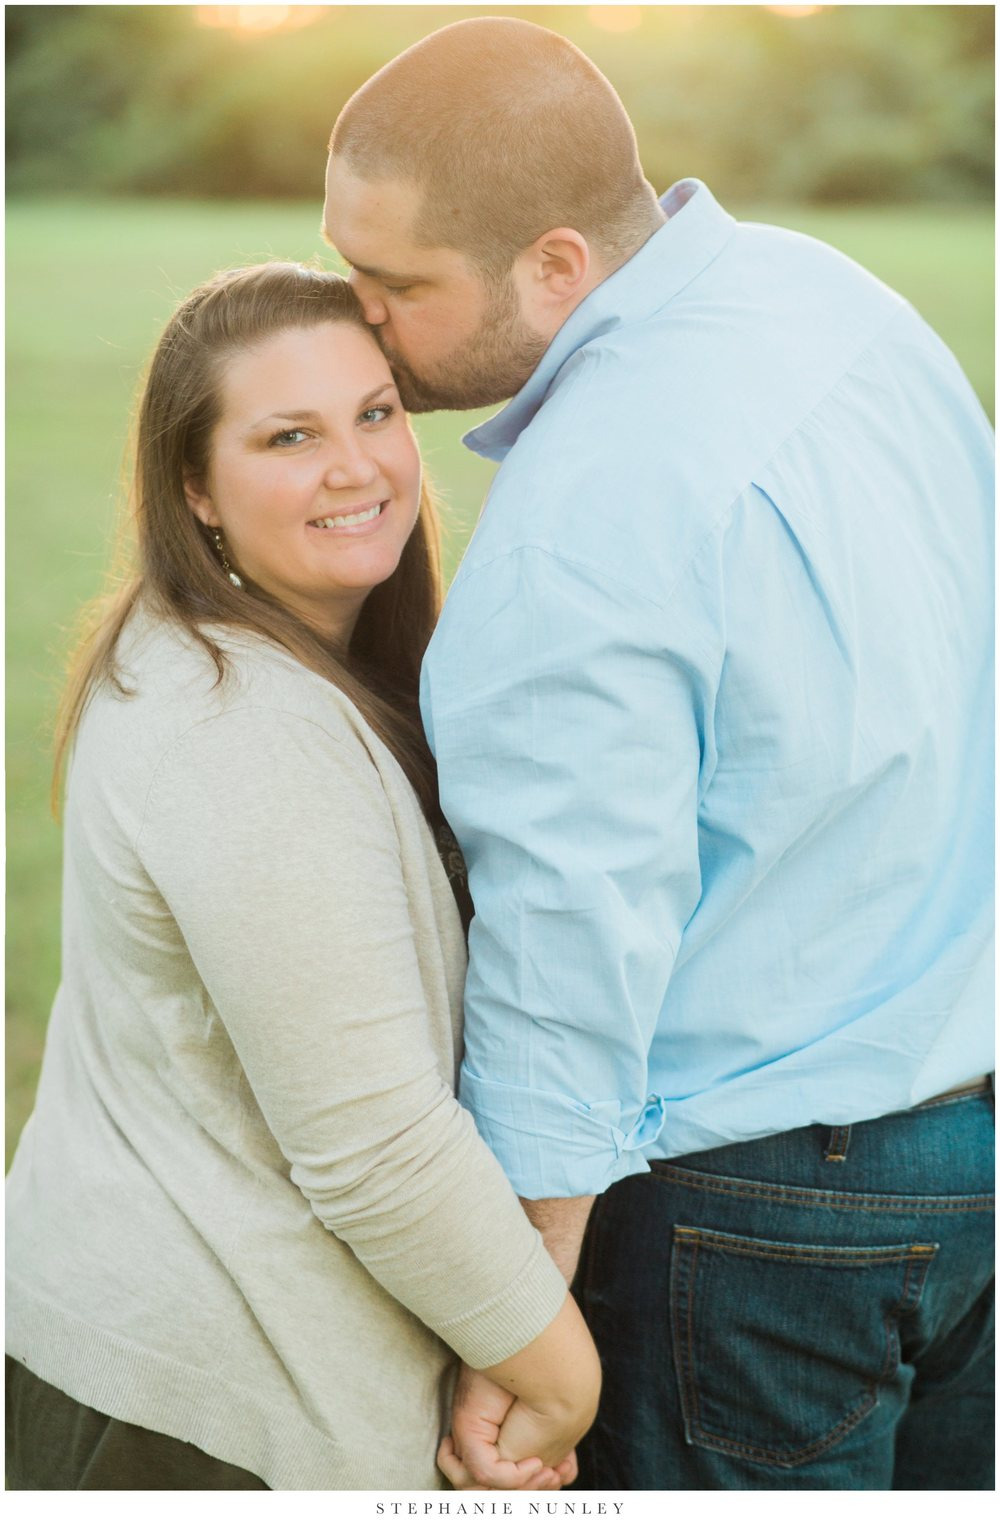 classic-engagement-session-in-a-field-0016.jpg